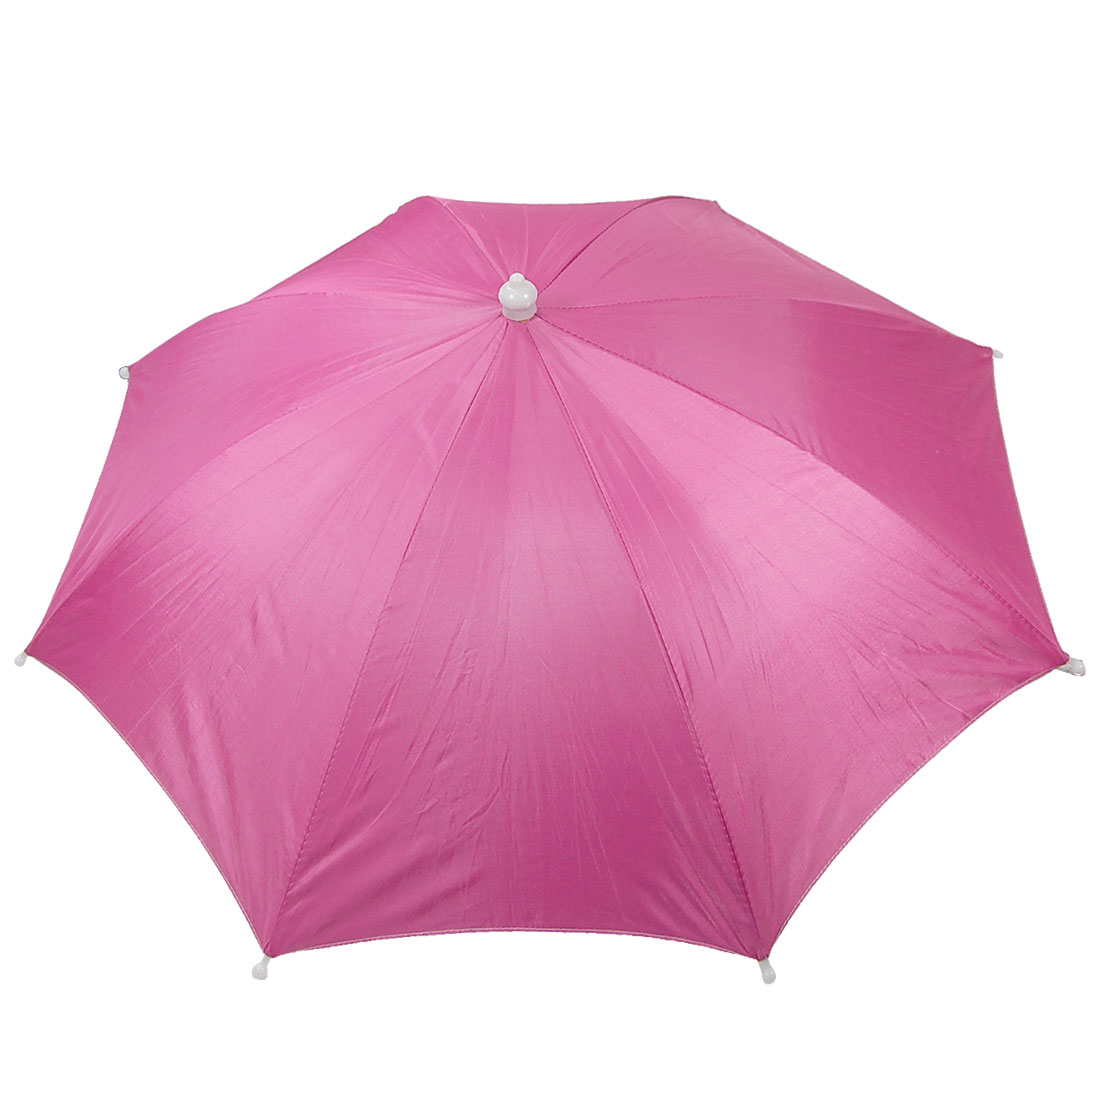 Fishing Golf Beach Sun Shade Umbrella Hat Headwear Fuchsia